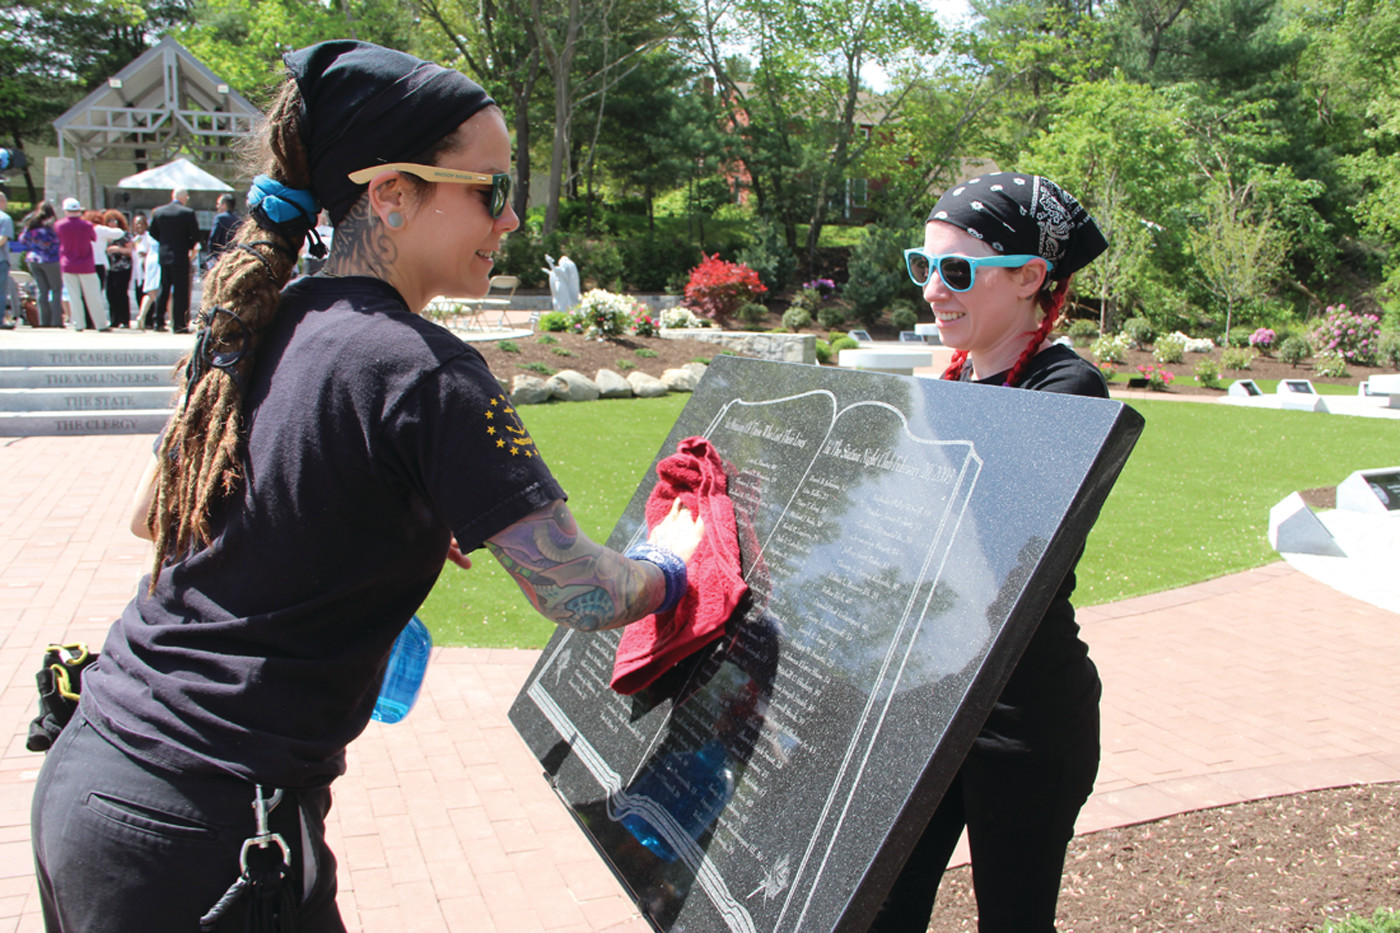 GETTING READY: Shanna Roma and Jennifer Donazio polish a plaque in preparation for Sunday's dedication.